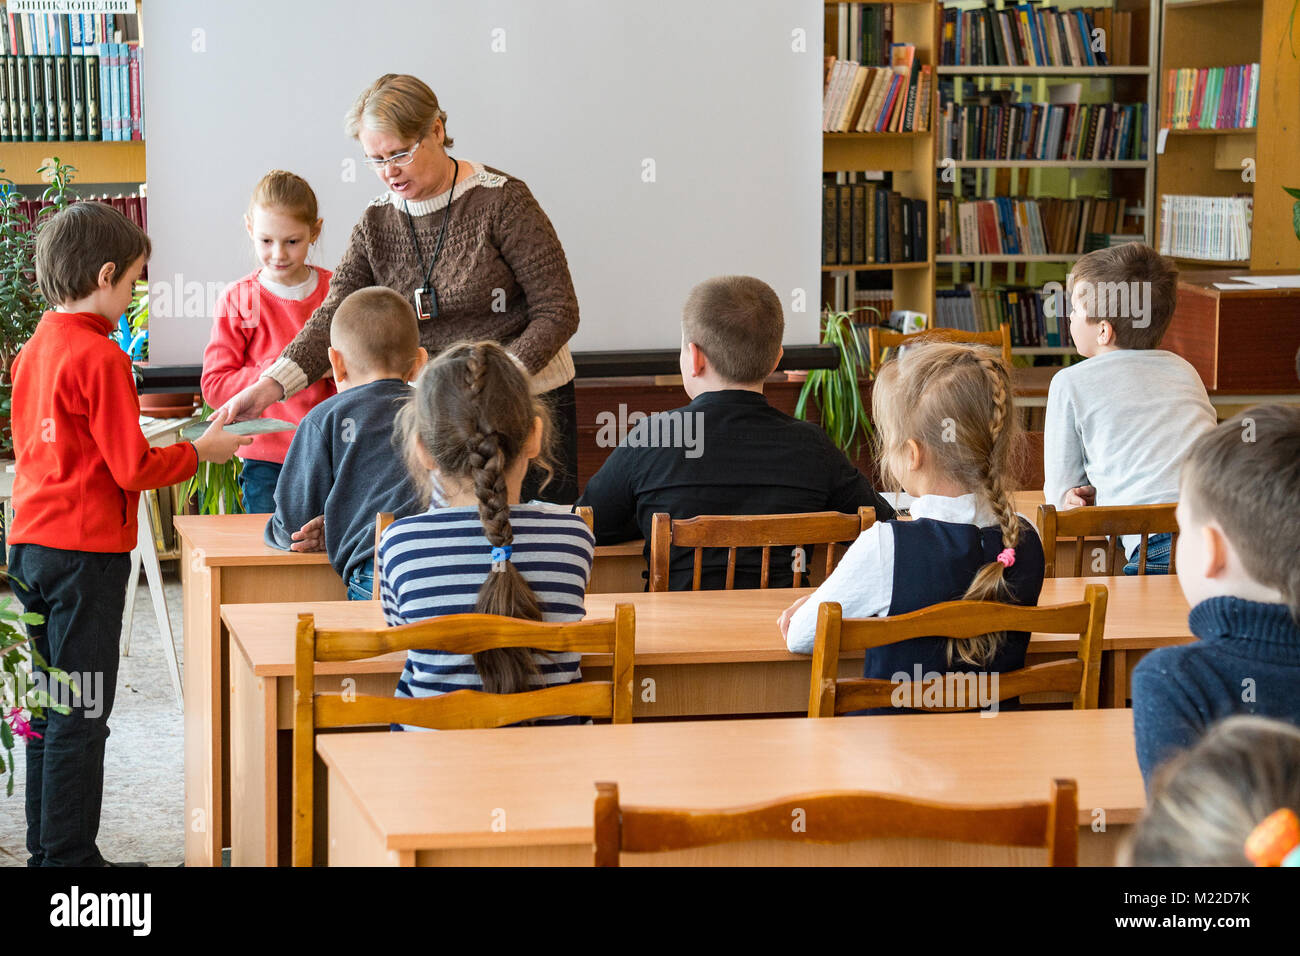 CHAPAEVSK, SAMARA REGION, RUSSIA - JANUARY 31, 2018: School kids of elementary school in the classroom with a female - Stock Image